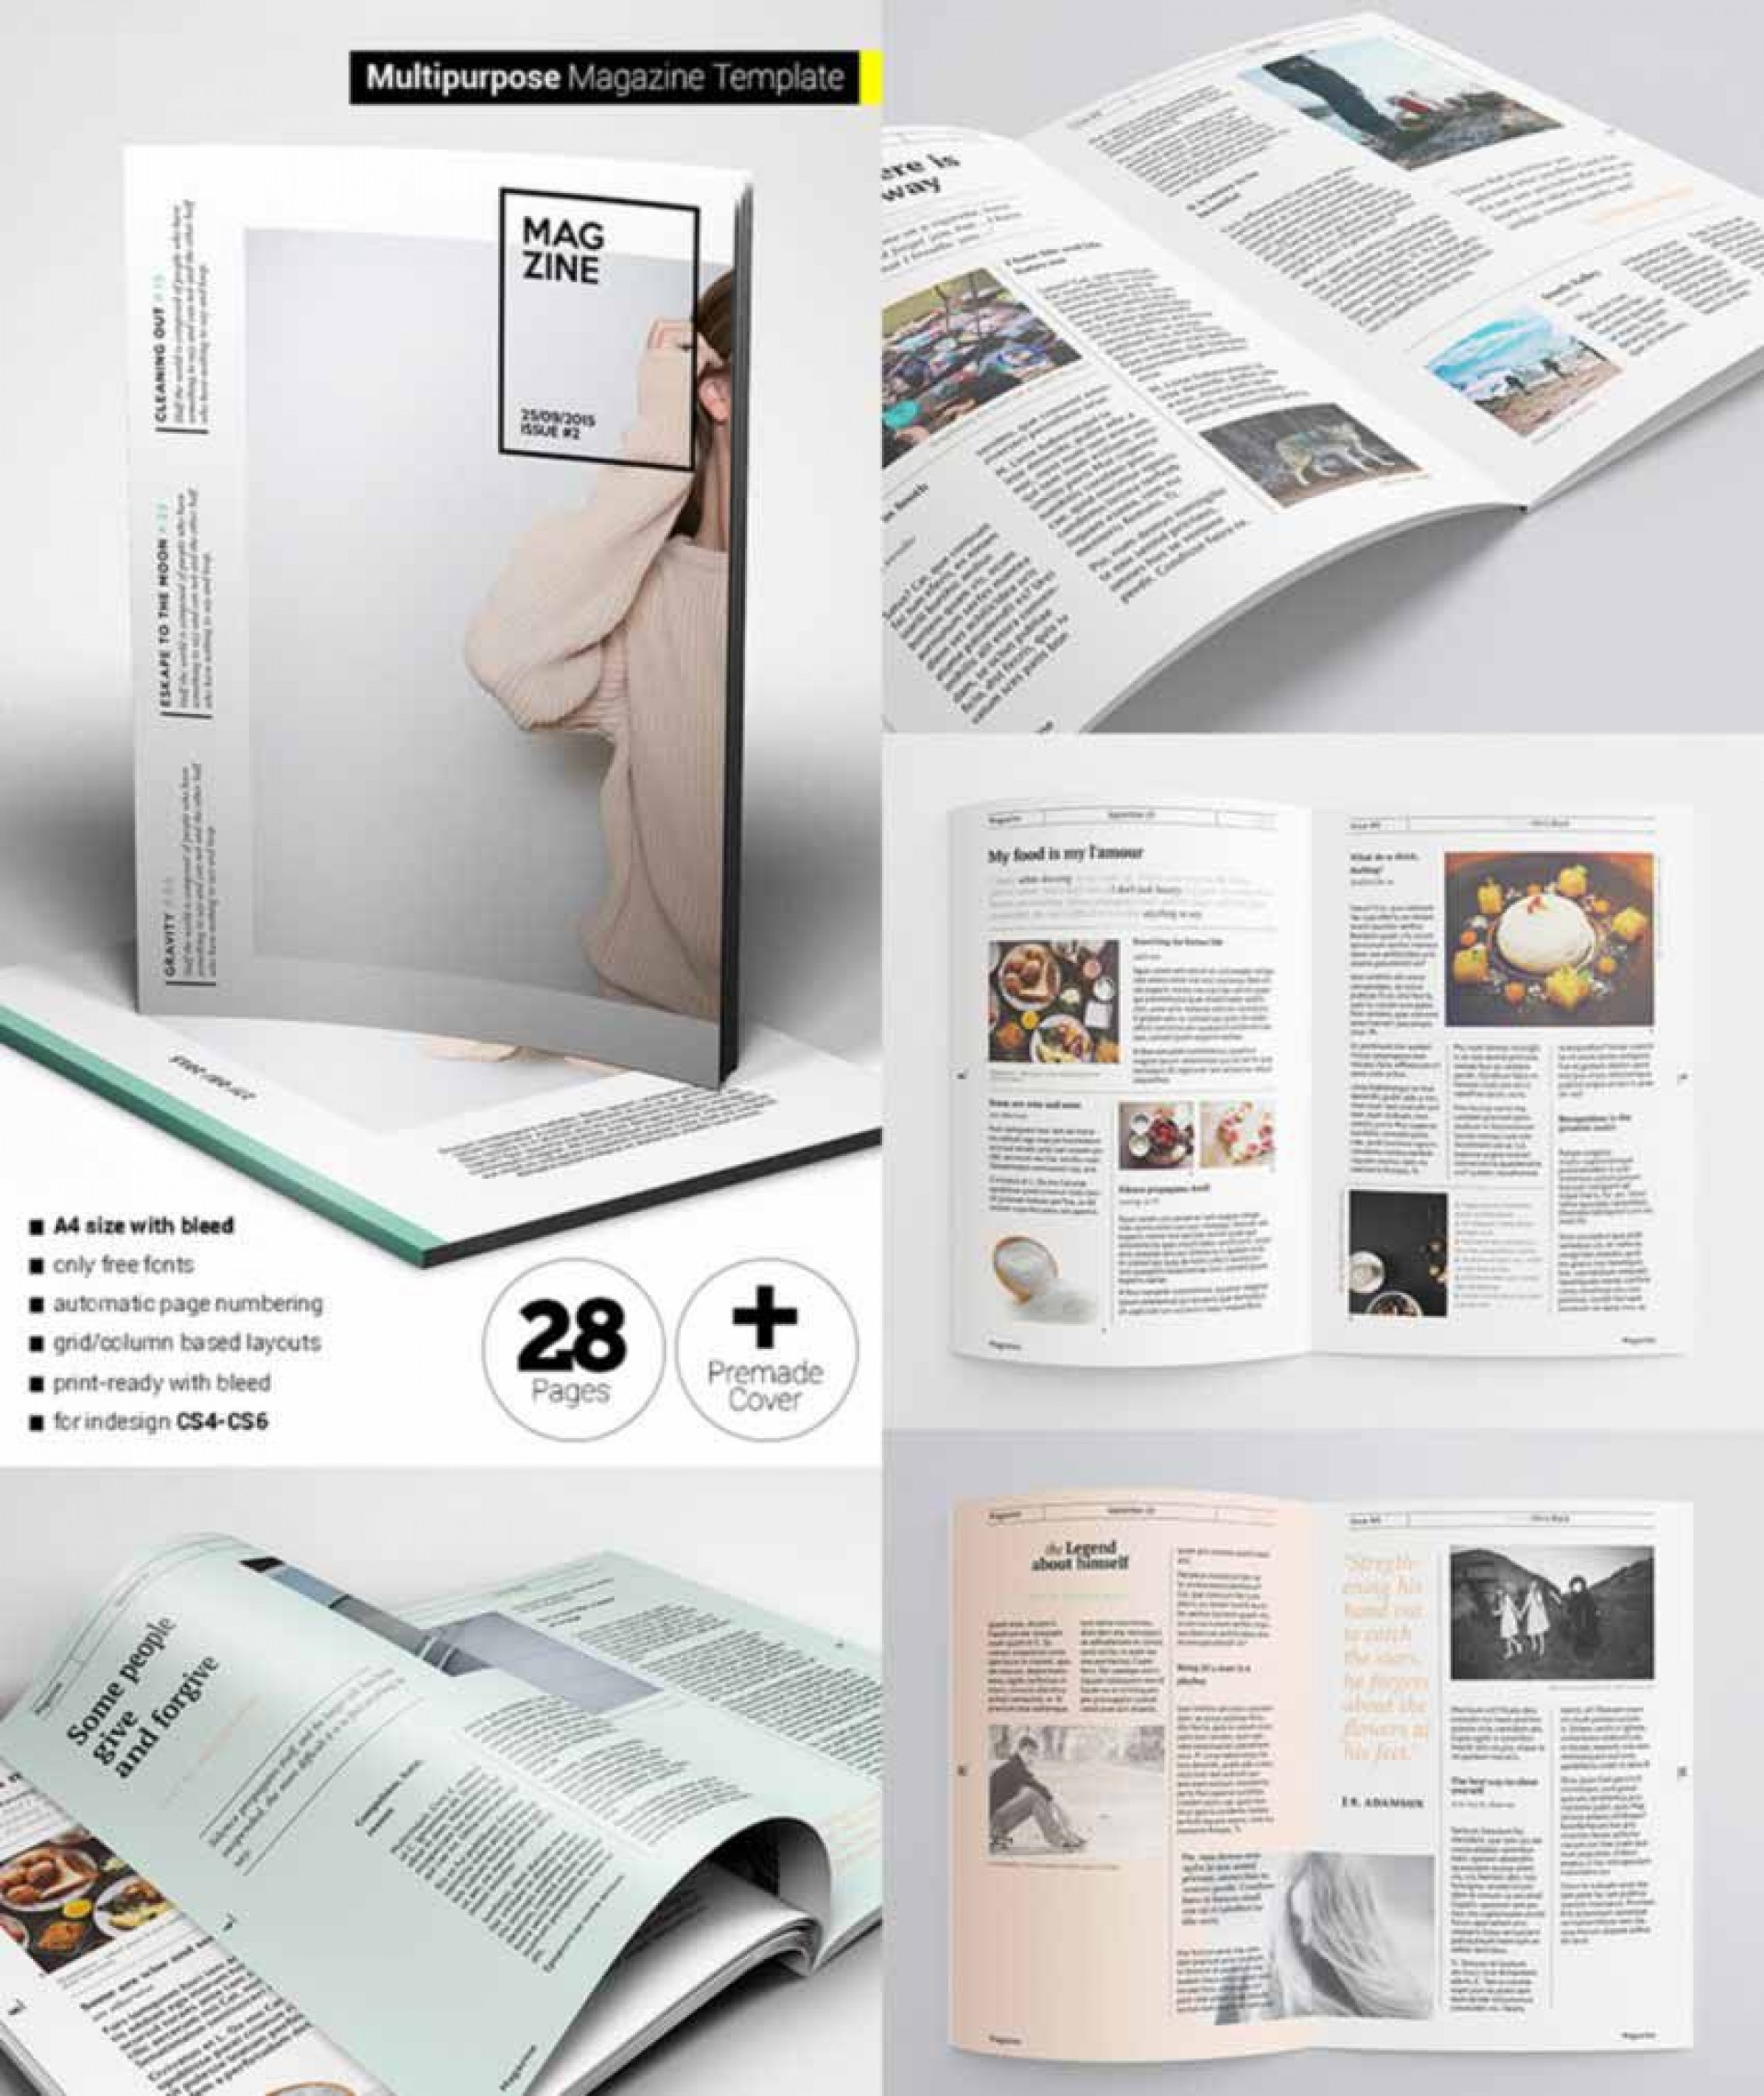 007 Archaicawful Free Magazine Layout Template High Resolution  Templates For Word Microsoft Powerpoint1920